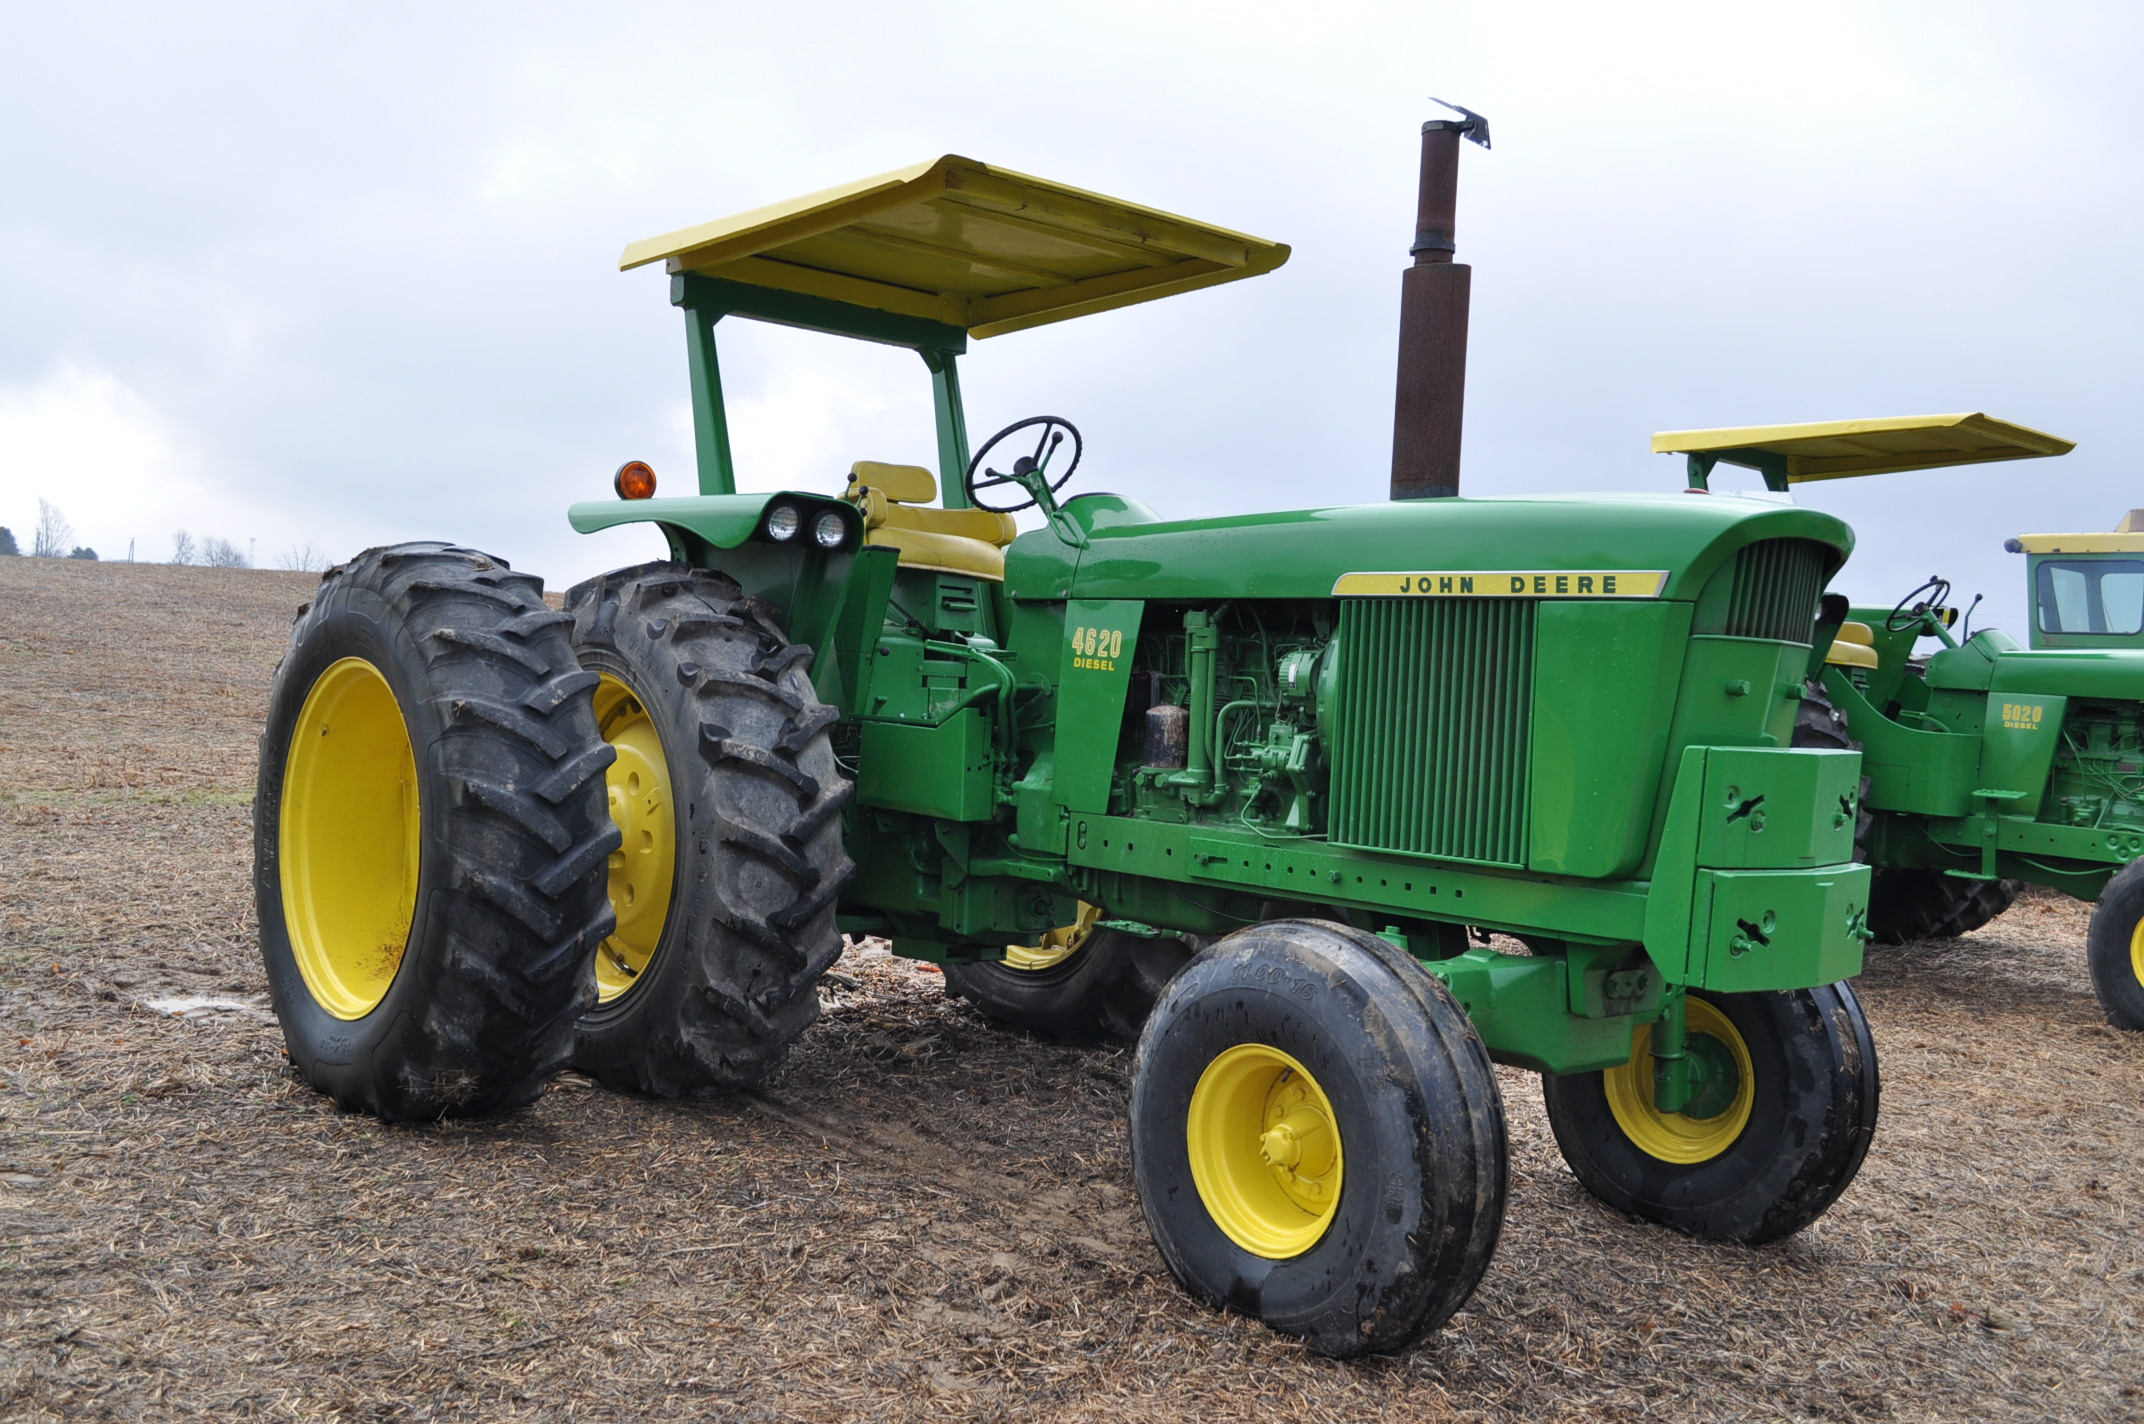 John Deere 4520 tractor, ***4520 frame with 4620 engine**** diesel, 18.4-38 new inside rear - Image 4 of 17